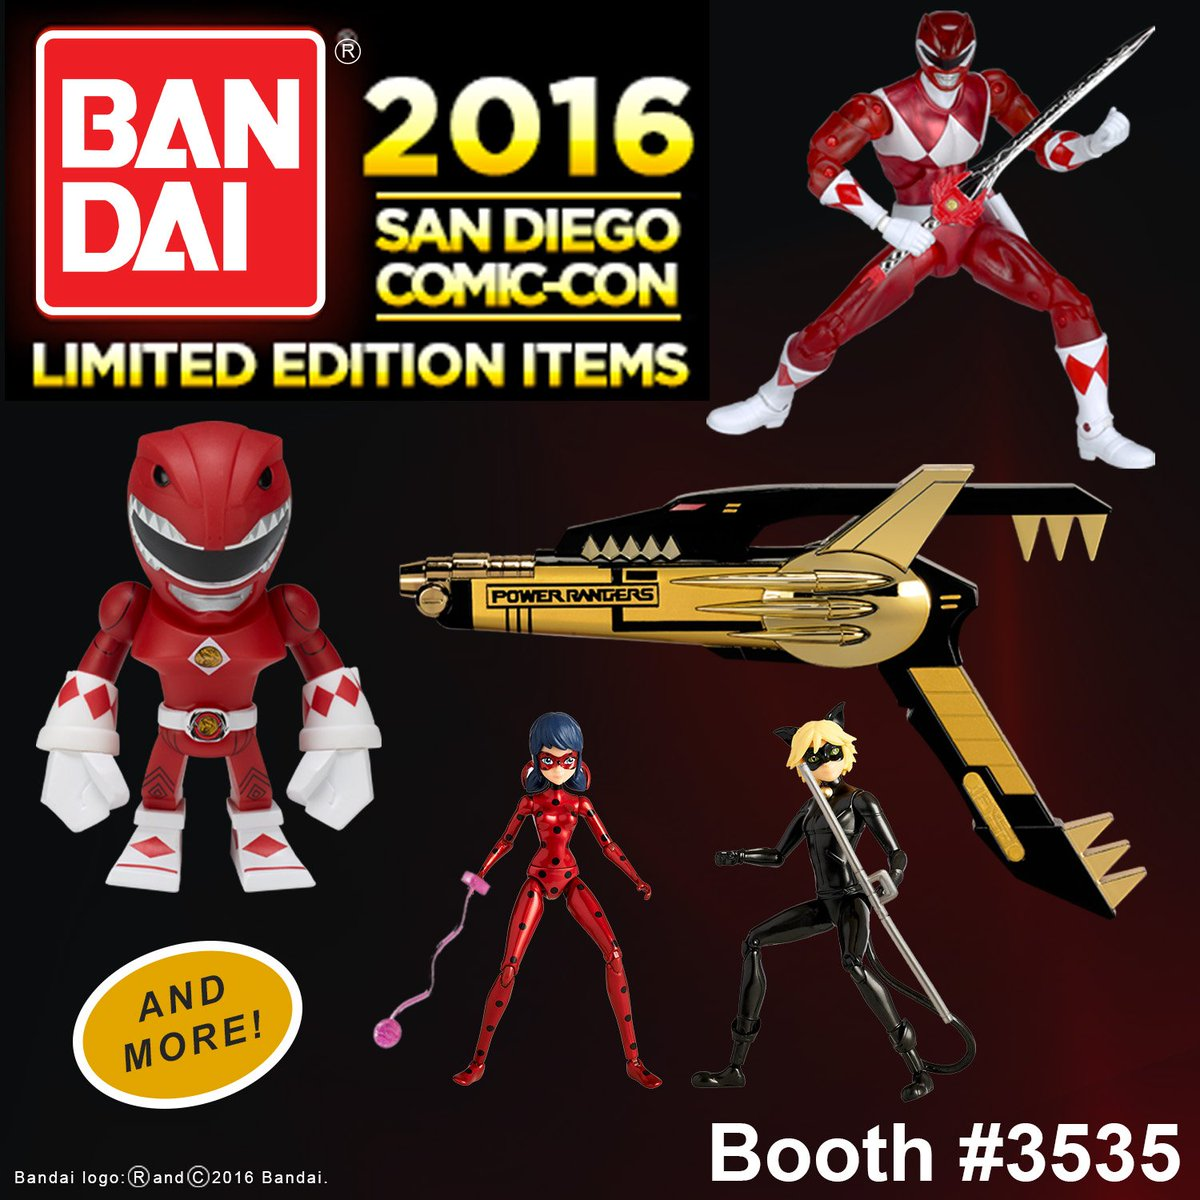 Check out our #SDCC2016 website to learn about this year's exclusive products and reveals! https://t.co/GAafsisrds https://t.co/o99MwNPLI6